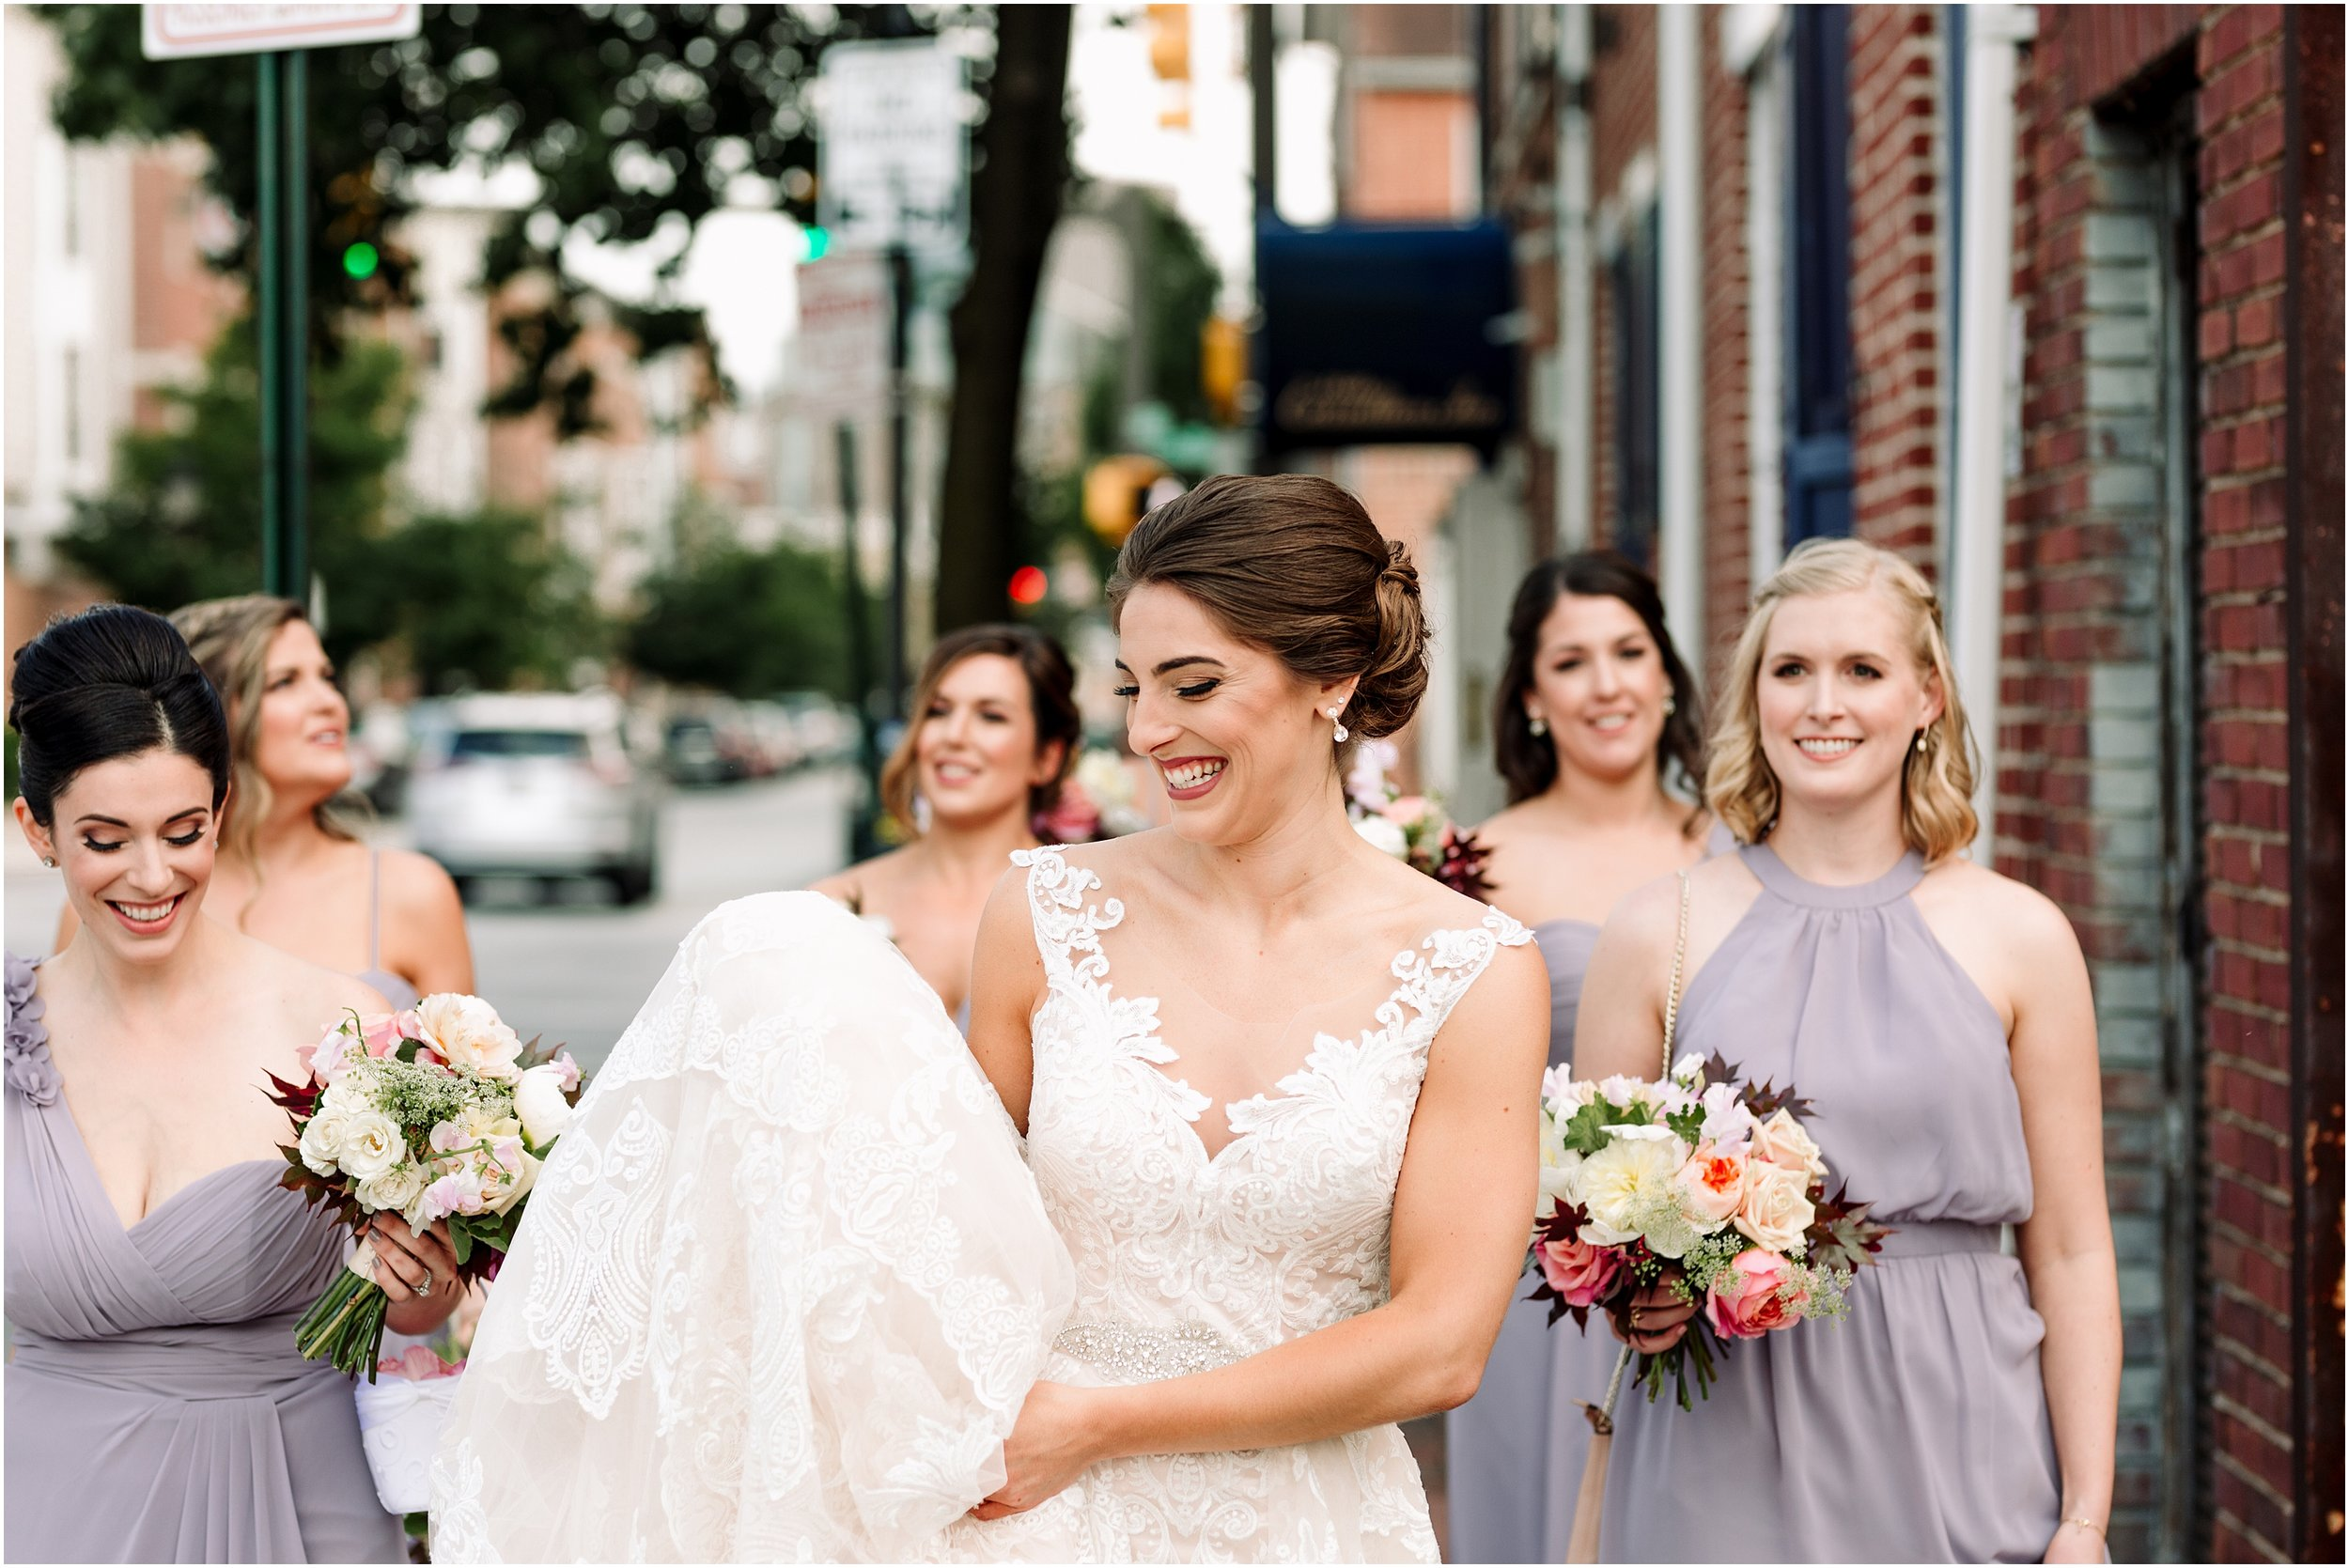 hannah leigh photography 1840s plaza wedding baltimore md_0056.jpg